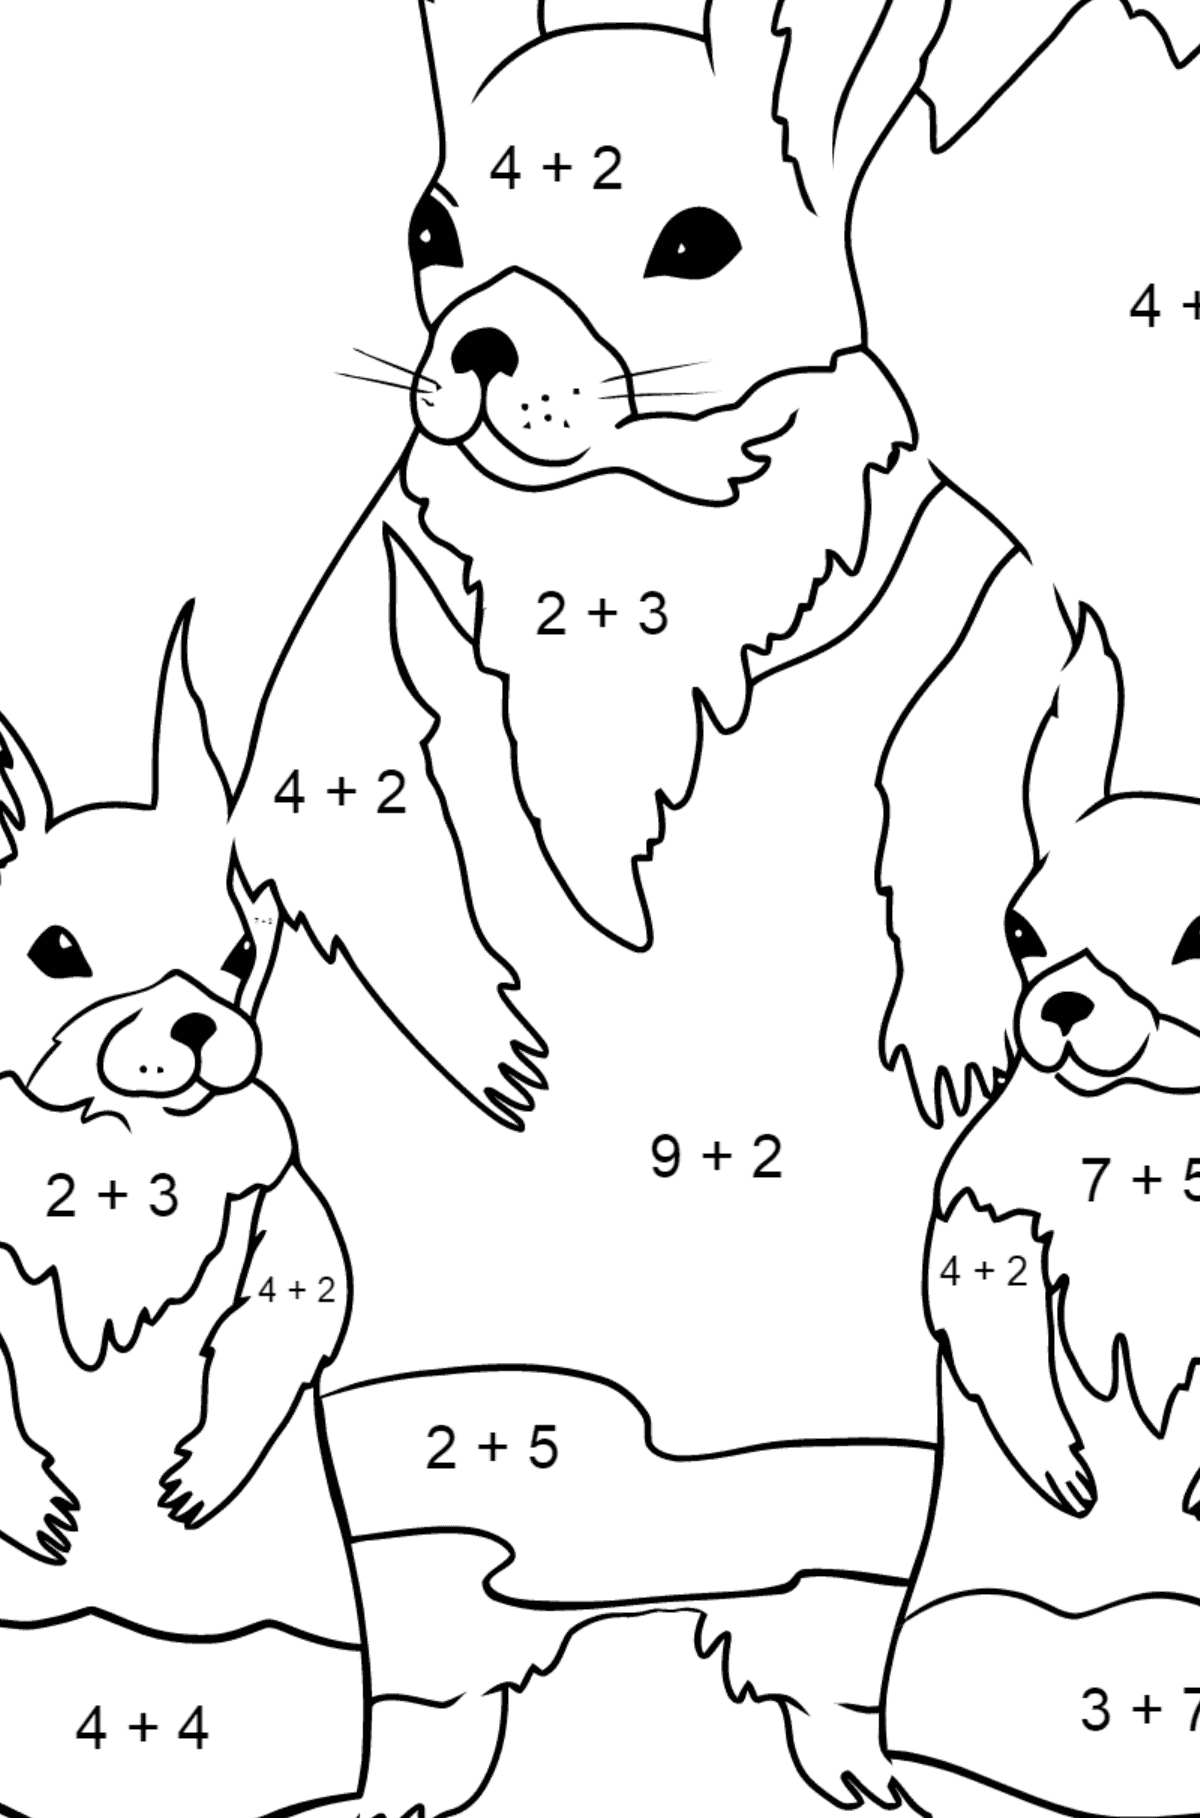 Spring Coloring Page - Squirrels are Preparing to Greet the Sun for Children  - Color by Number Addition